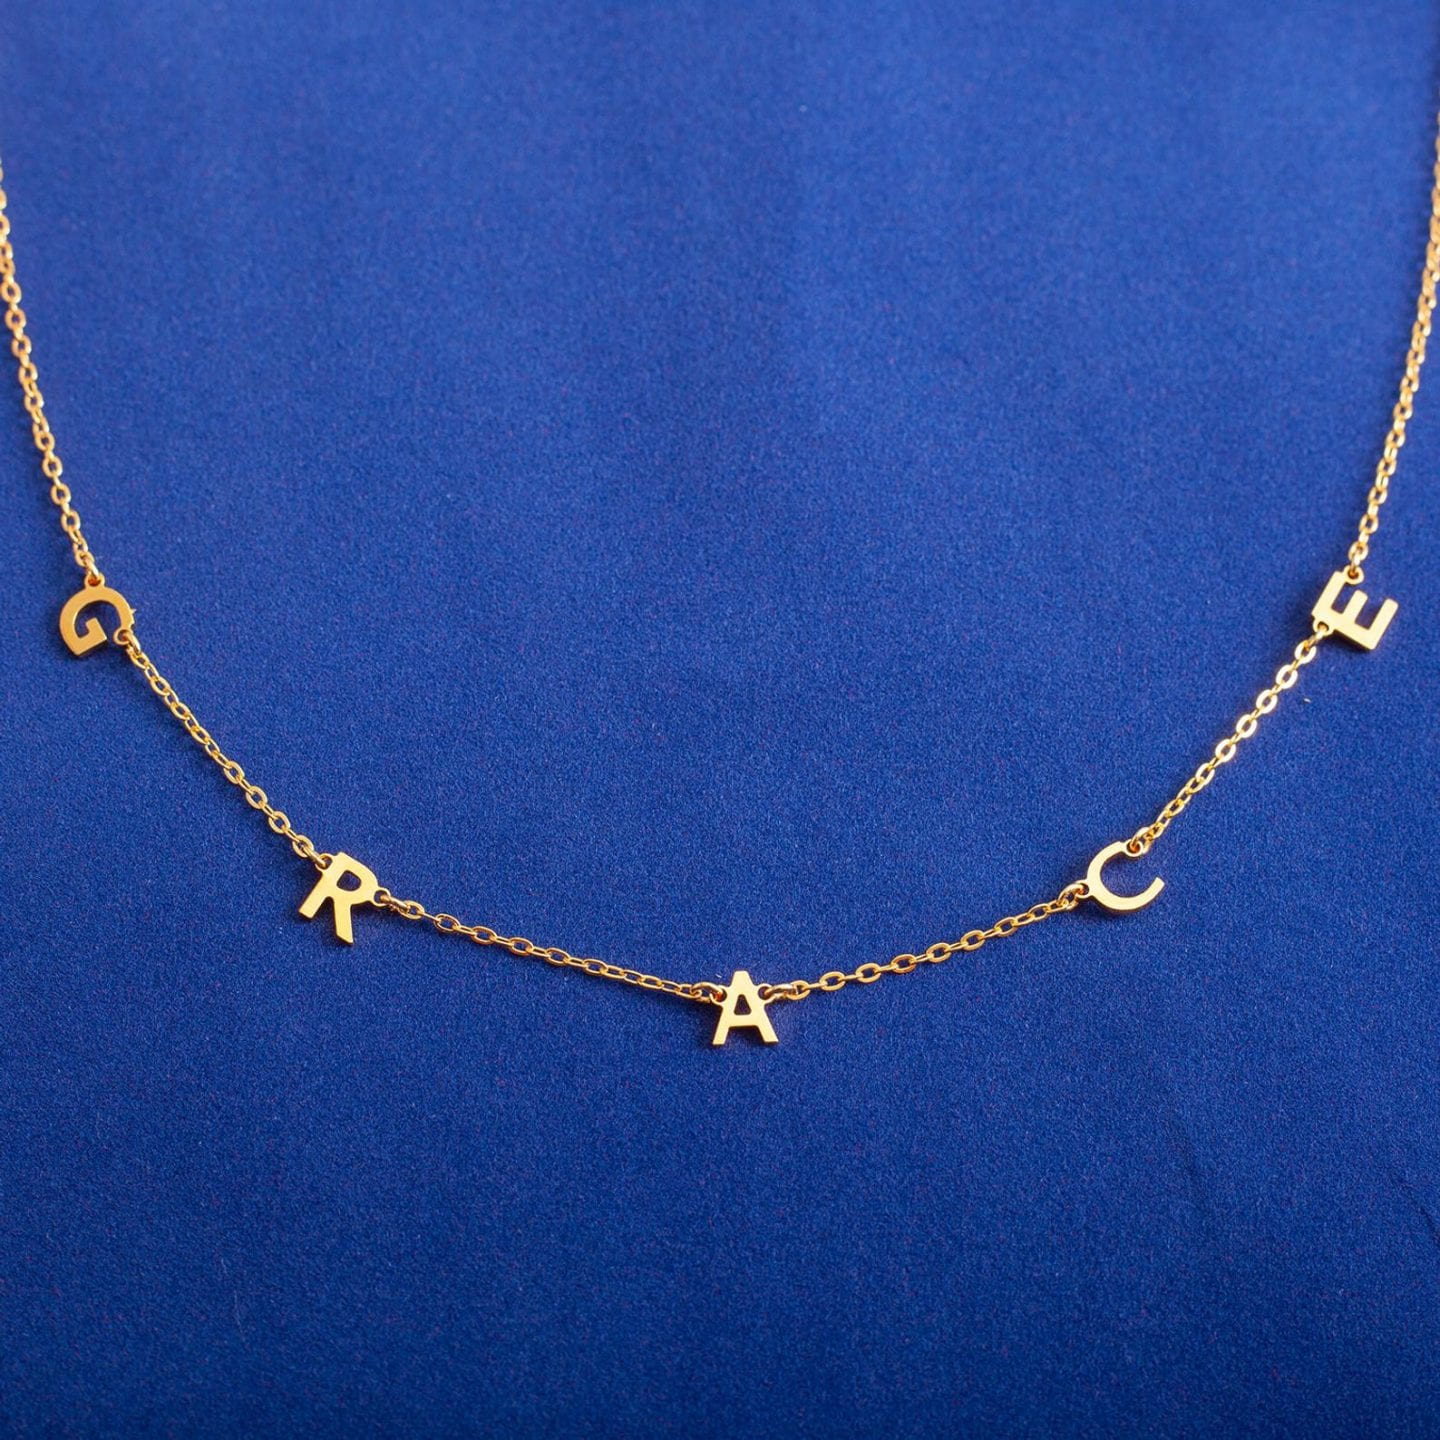 Initial Jewelry by popular San Francisco fashion blog, Just Add Glam: image of a initial necklace.